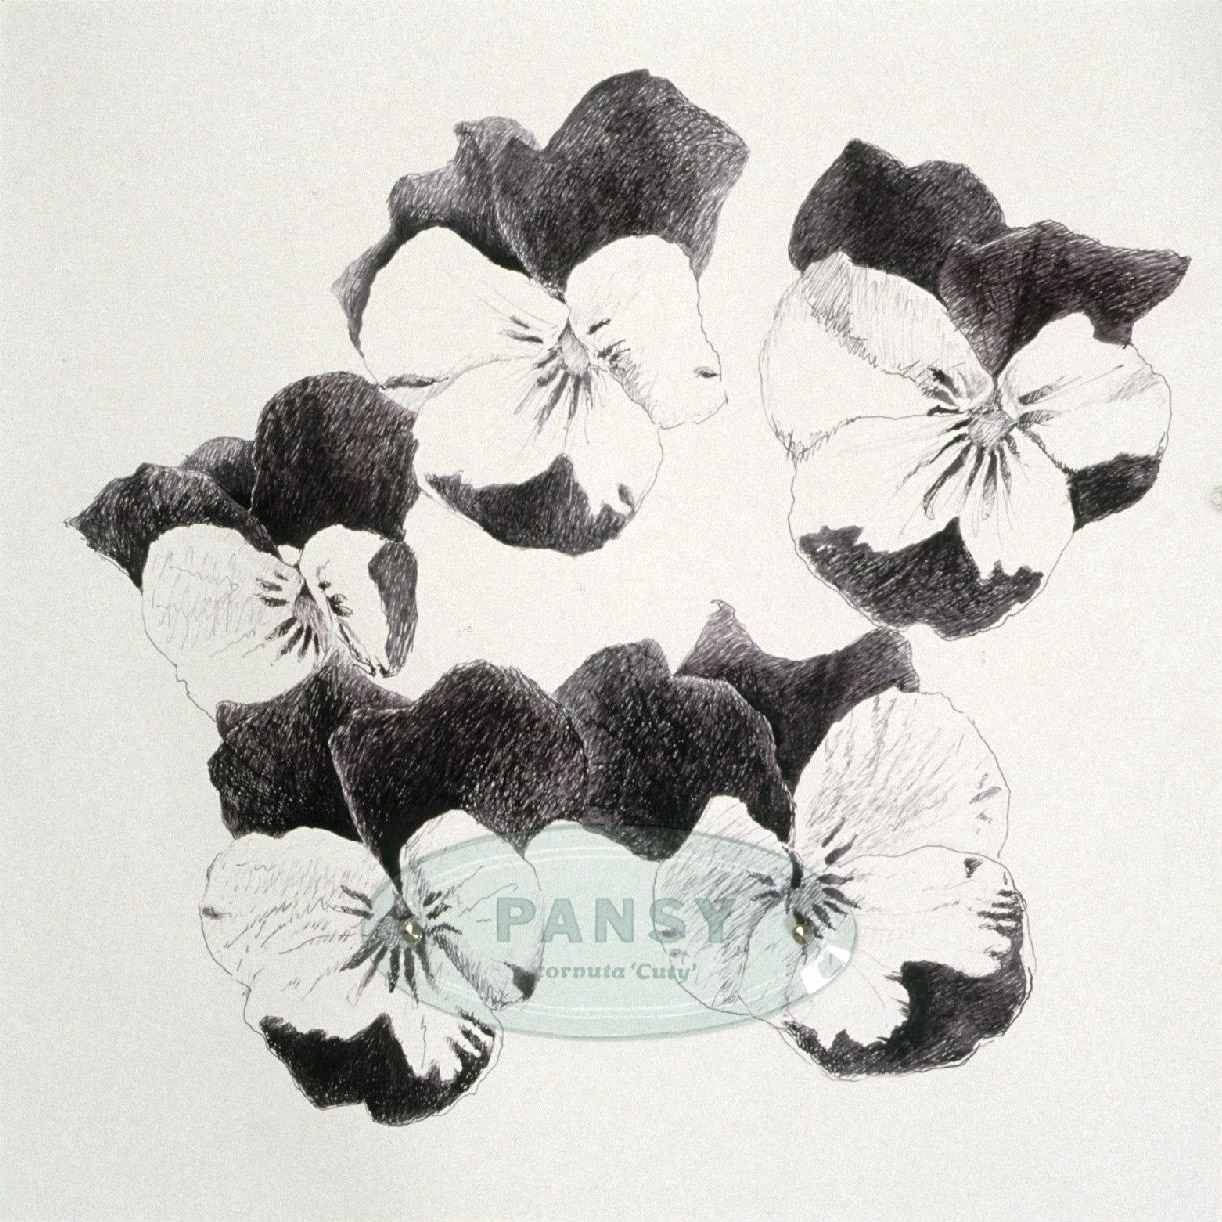 "Pansy Cornuta ""Cuty,"" 20"" x 20"" (50.8cm x 50.8cm), ink on paper, sandblasted glass, bolts"